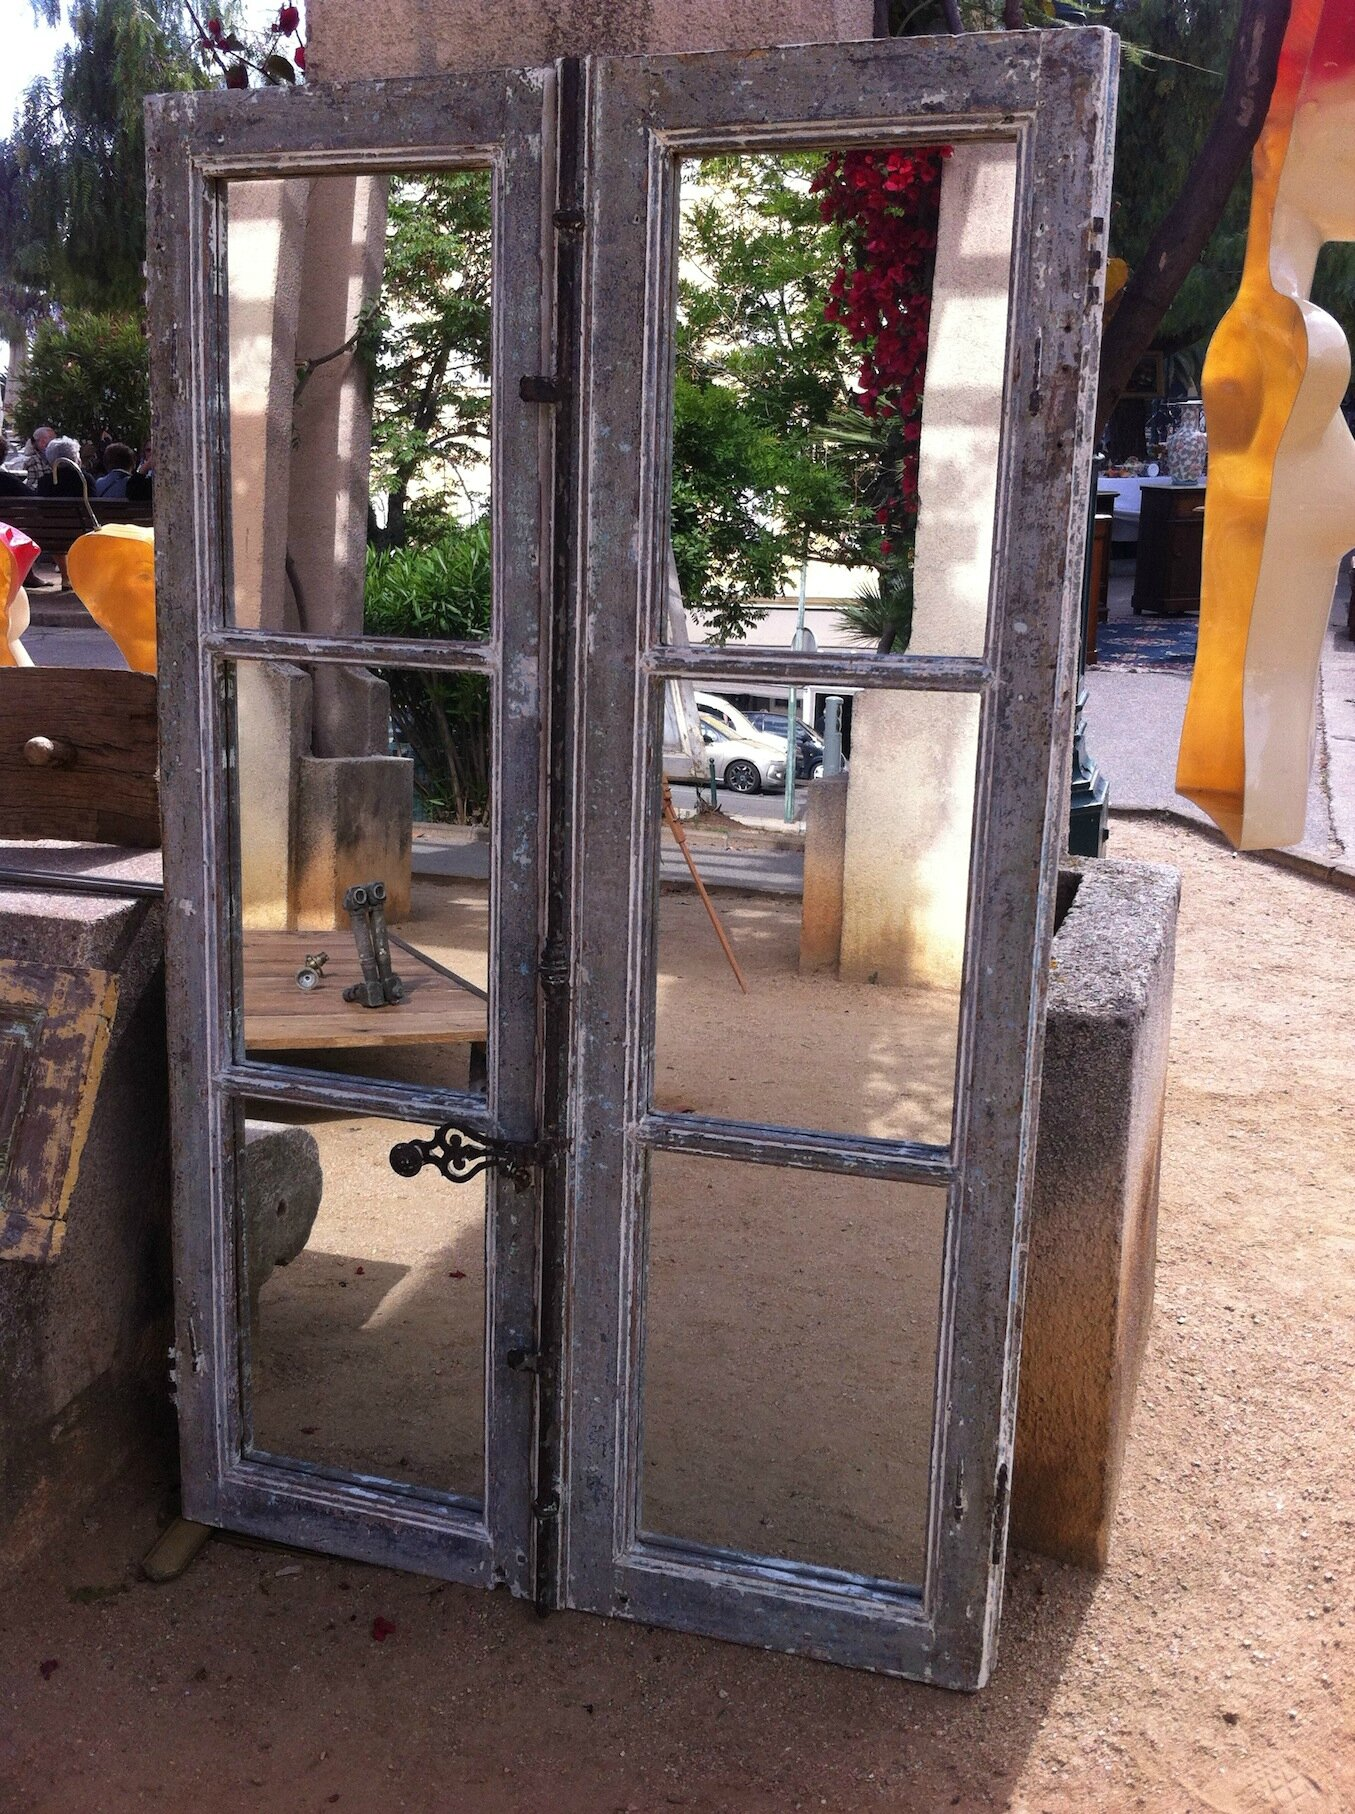 Miroir fen tre ancienne photo de juin 2014 l 39 atelier for Decoration fenetre ancienne